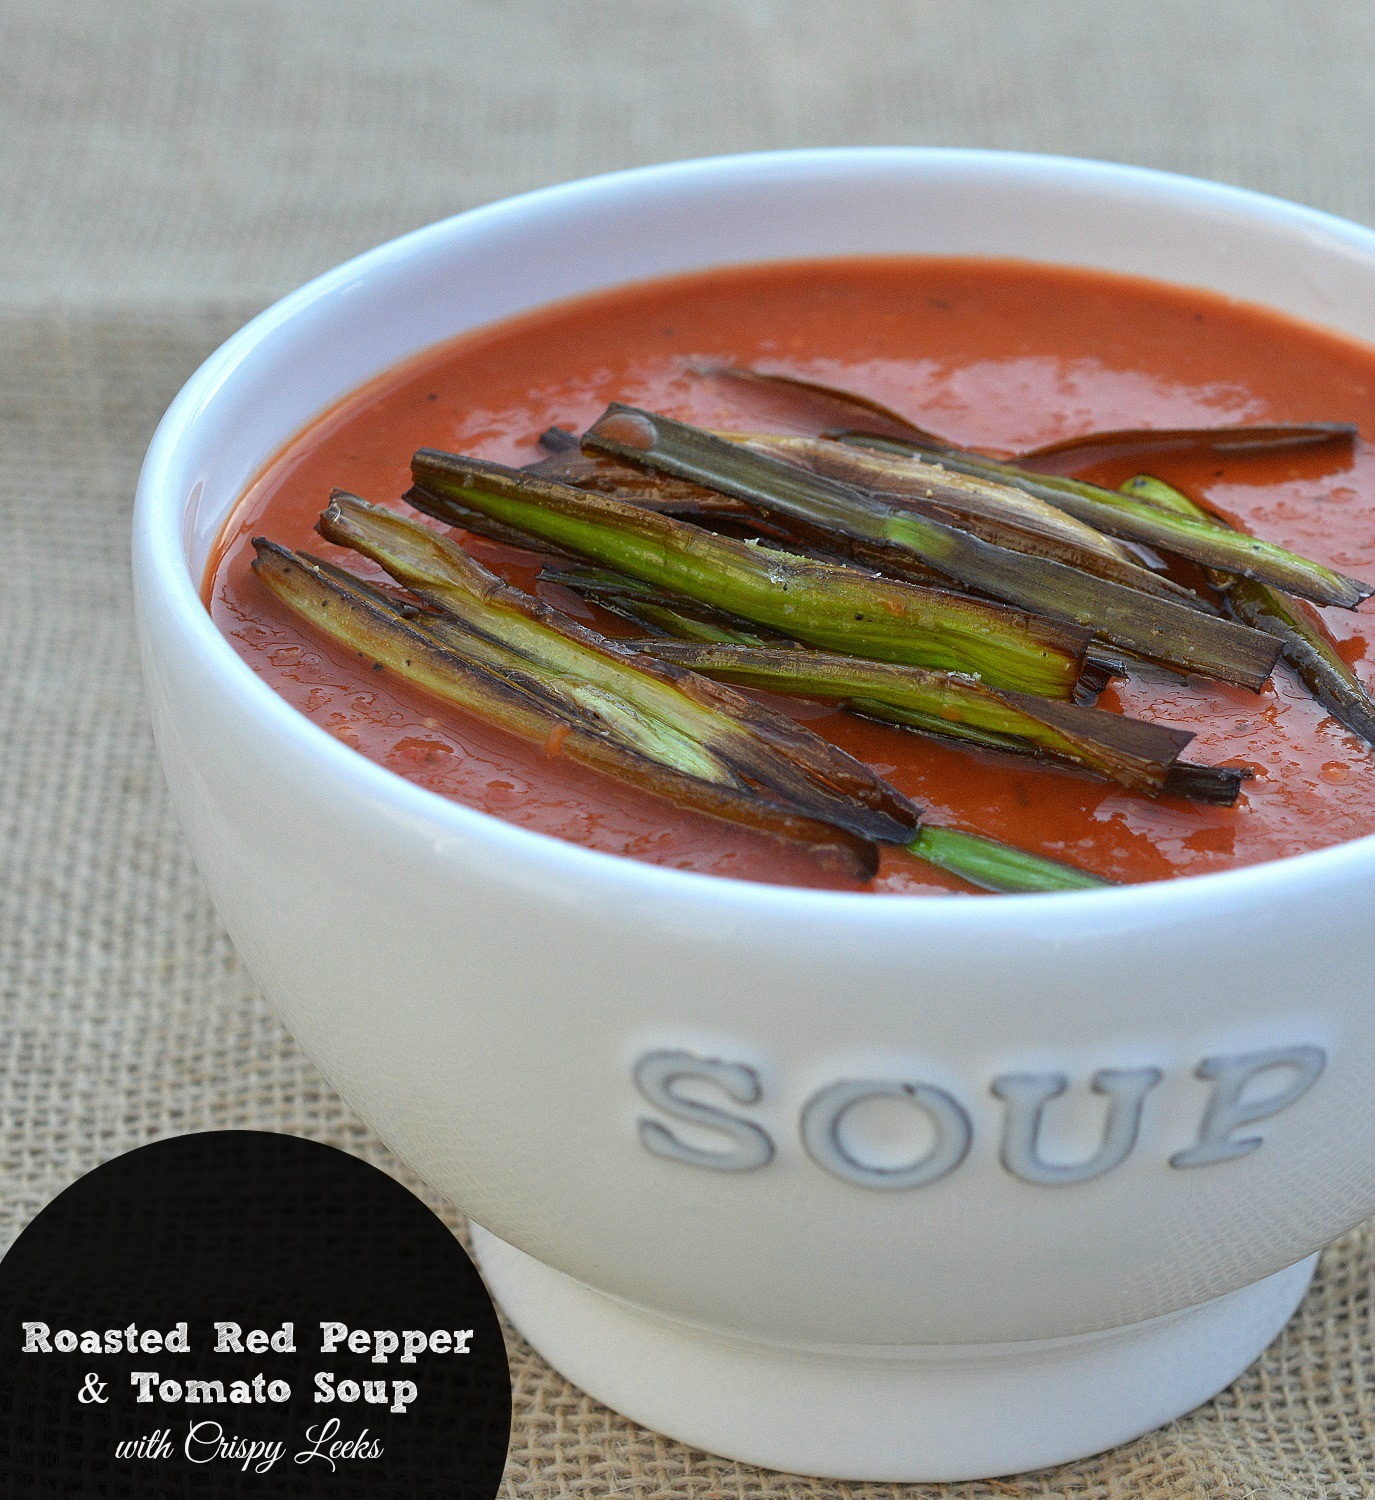 Roasted Red Pepper & Tomato Soup - Souffle Bombay